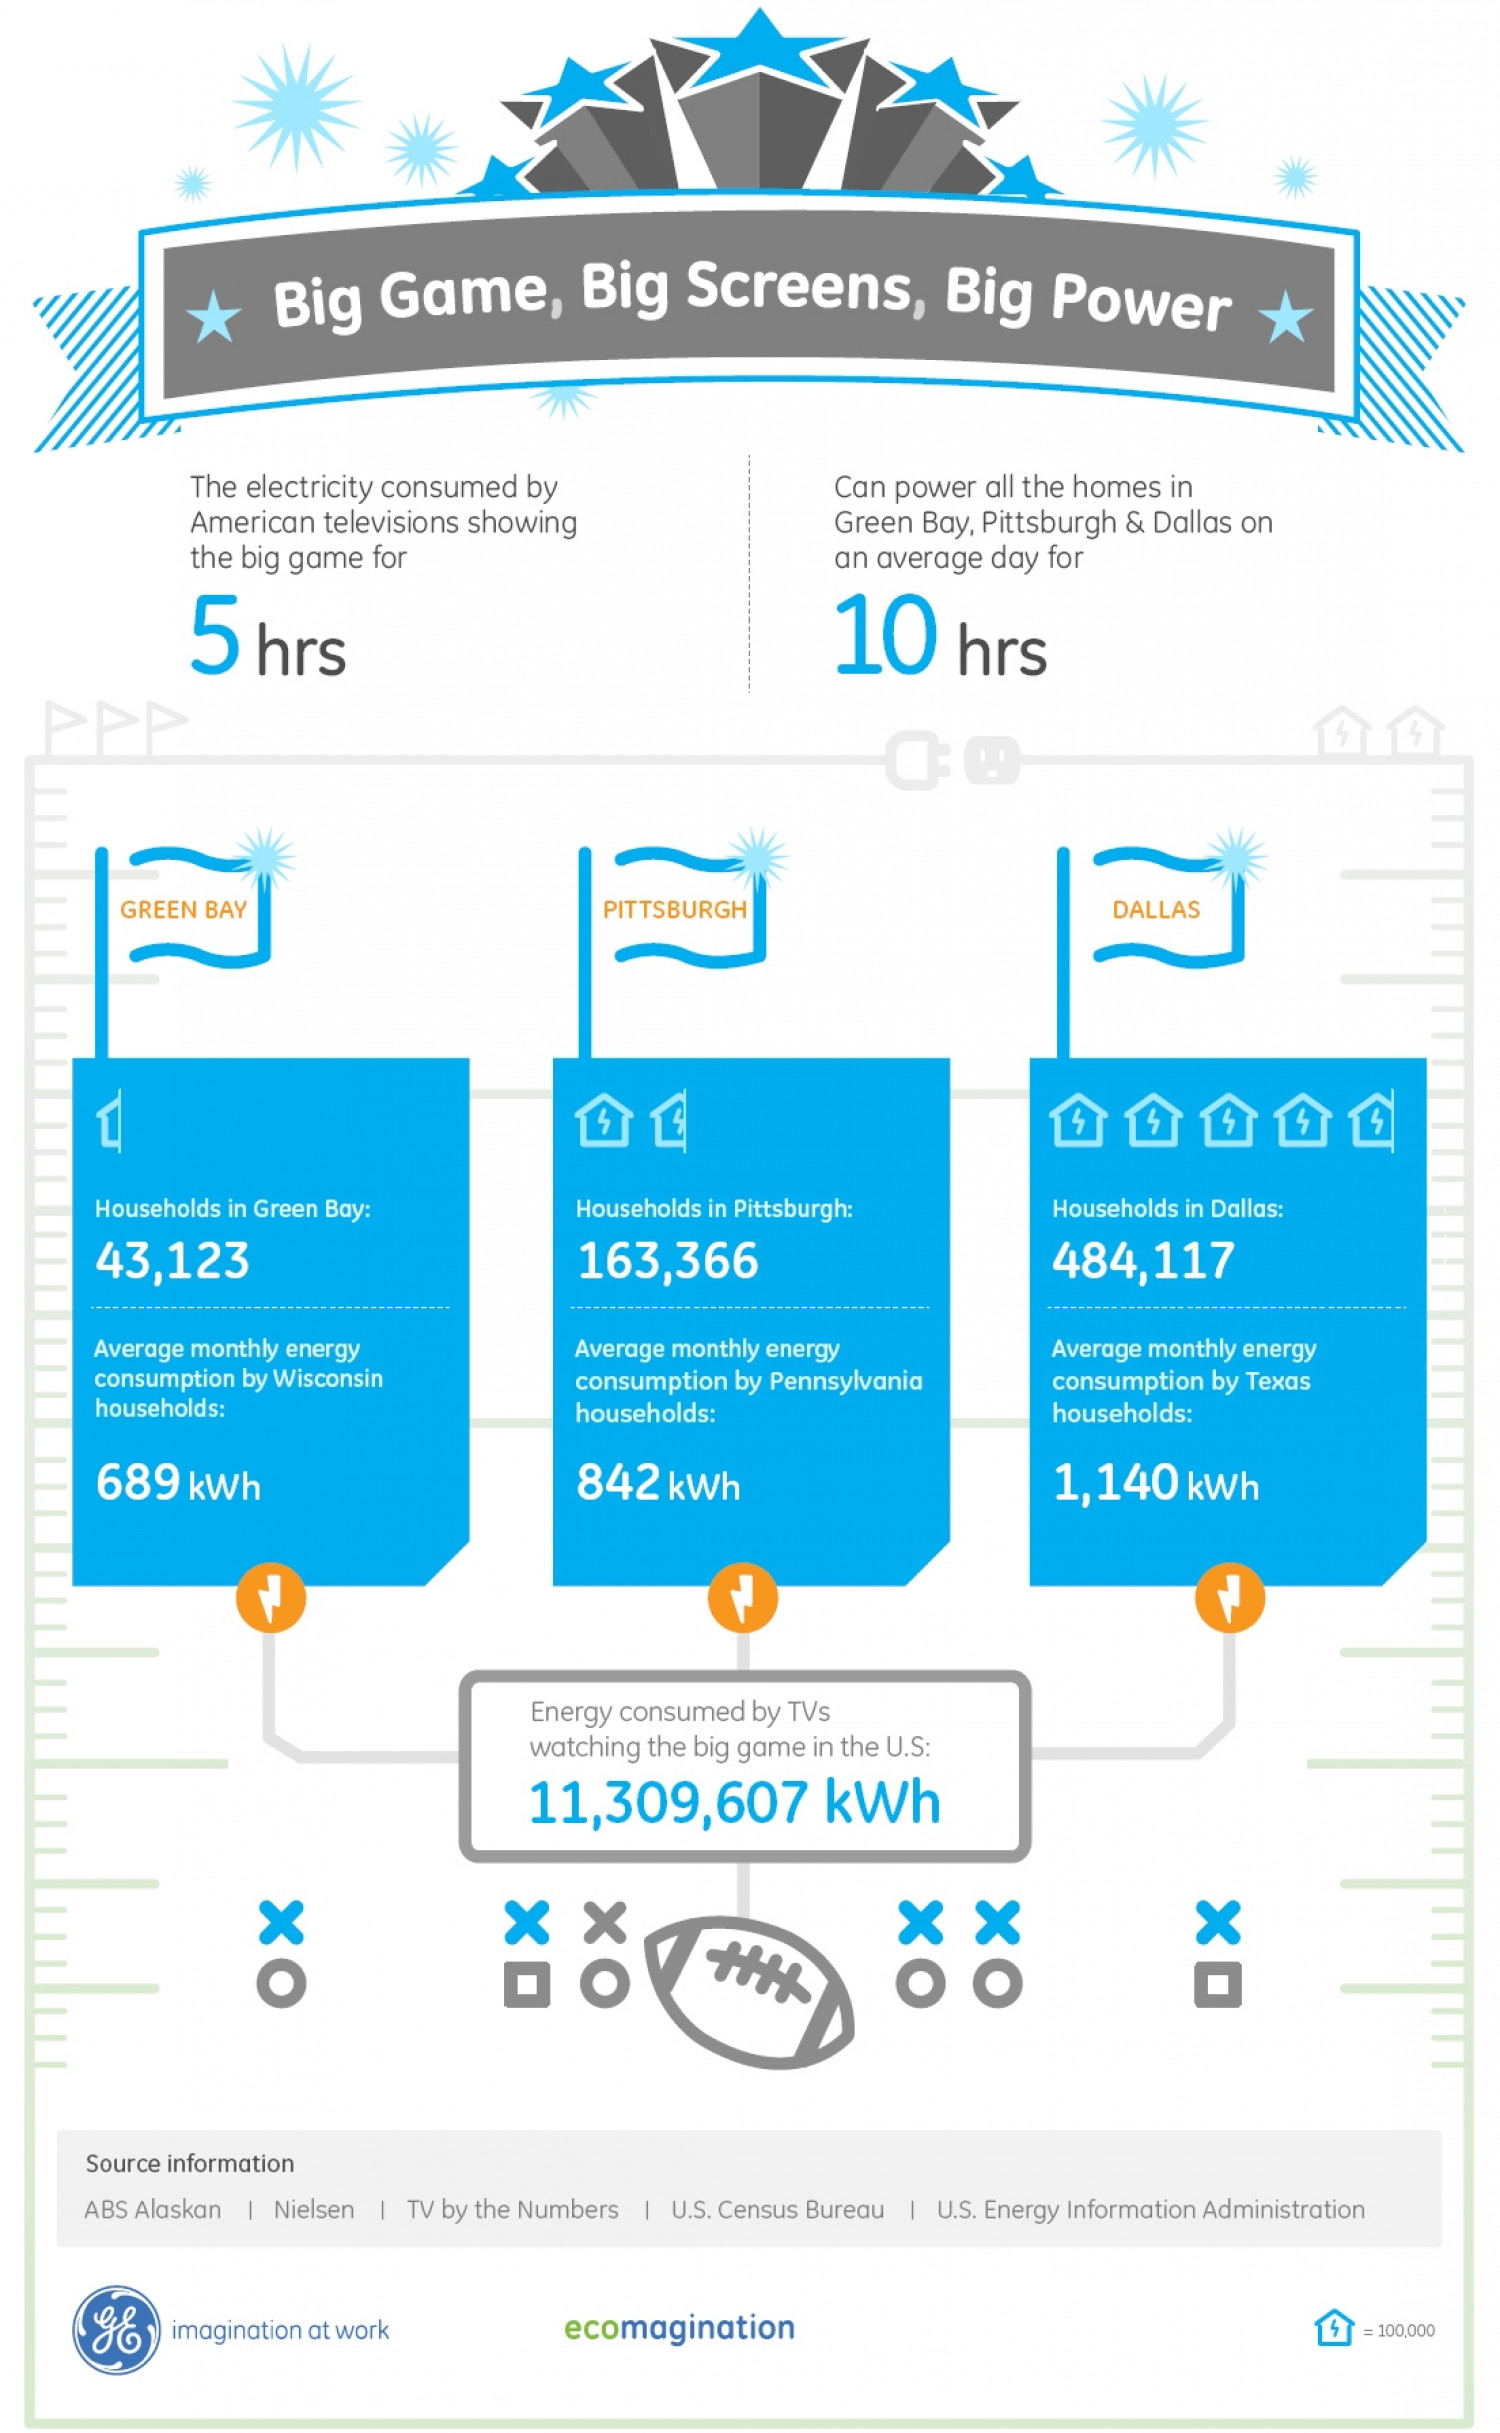 TVs Tuned to the Super Bowl Could Power 3 Cities for 10 Hours Infographic